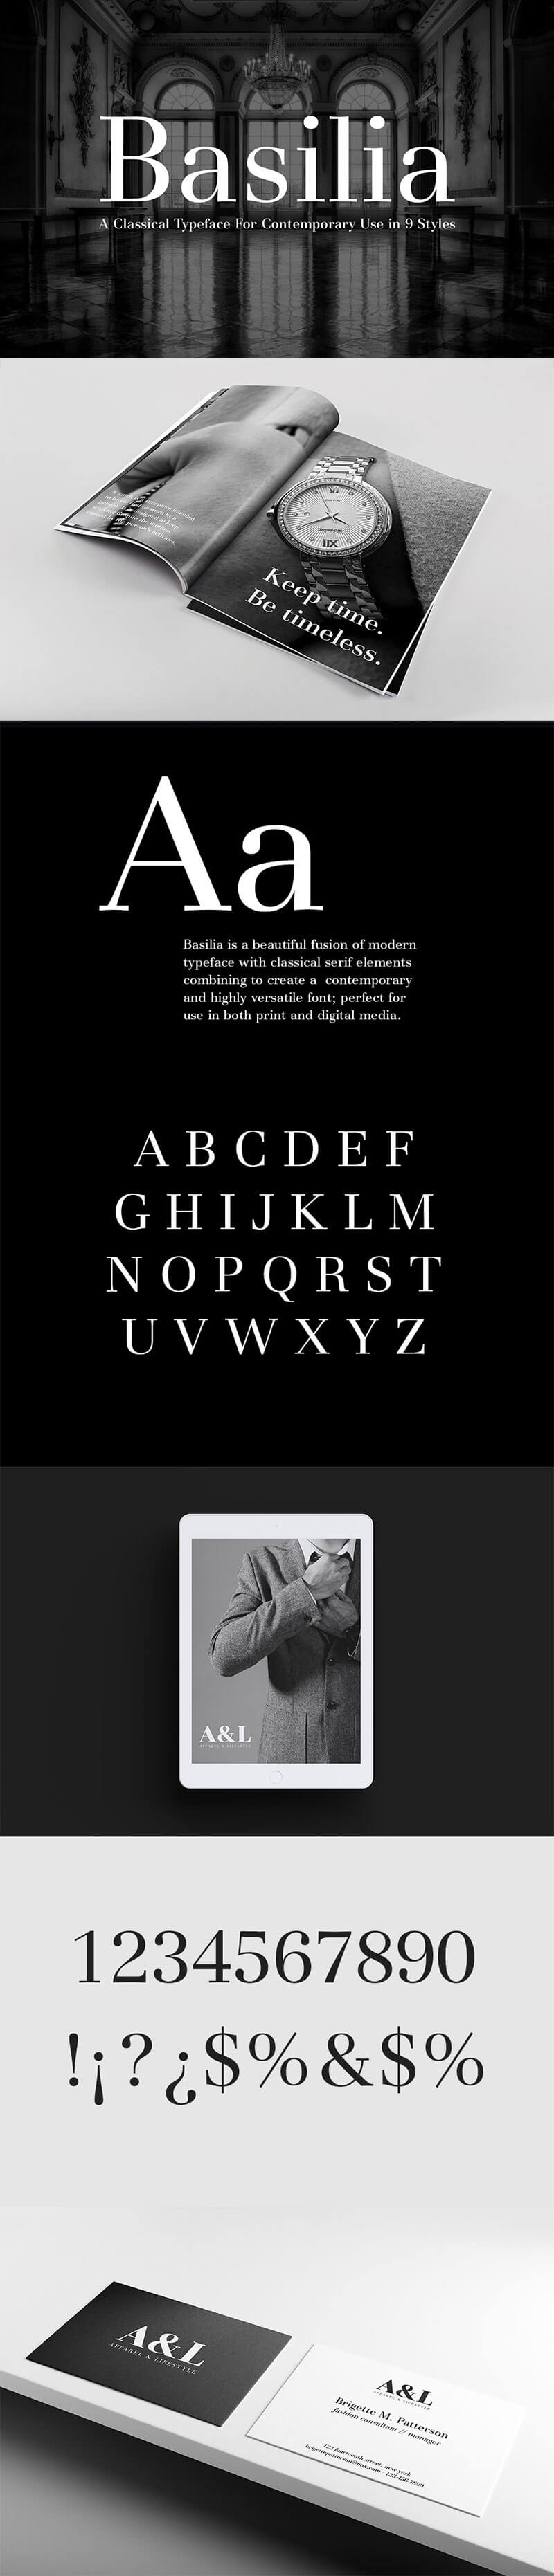 professional-dynamic-font-library-001-a